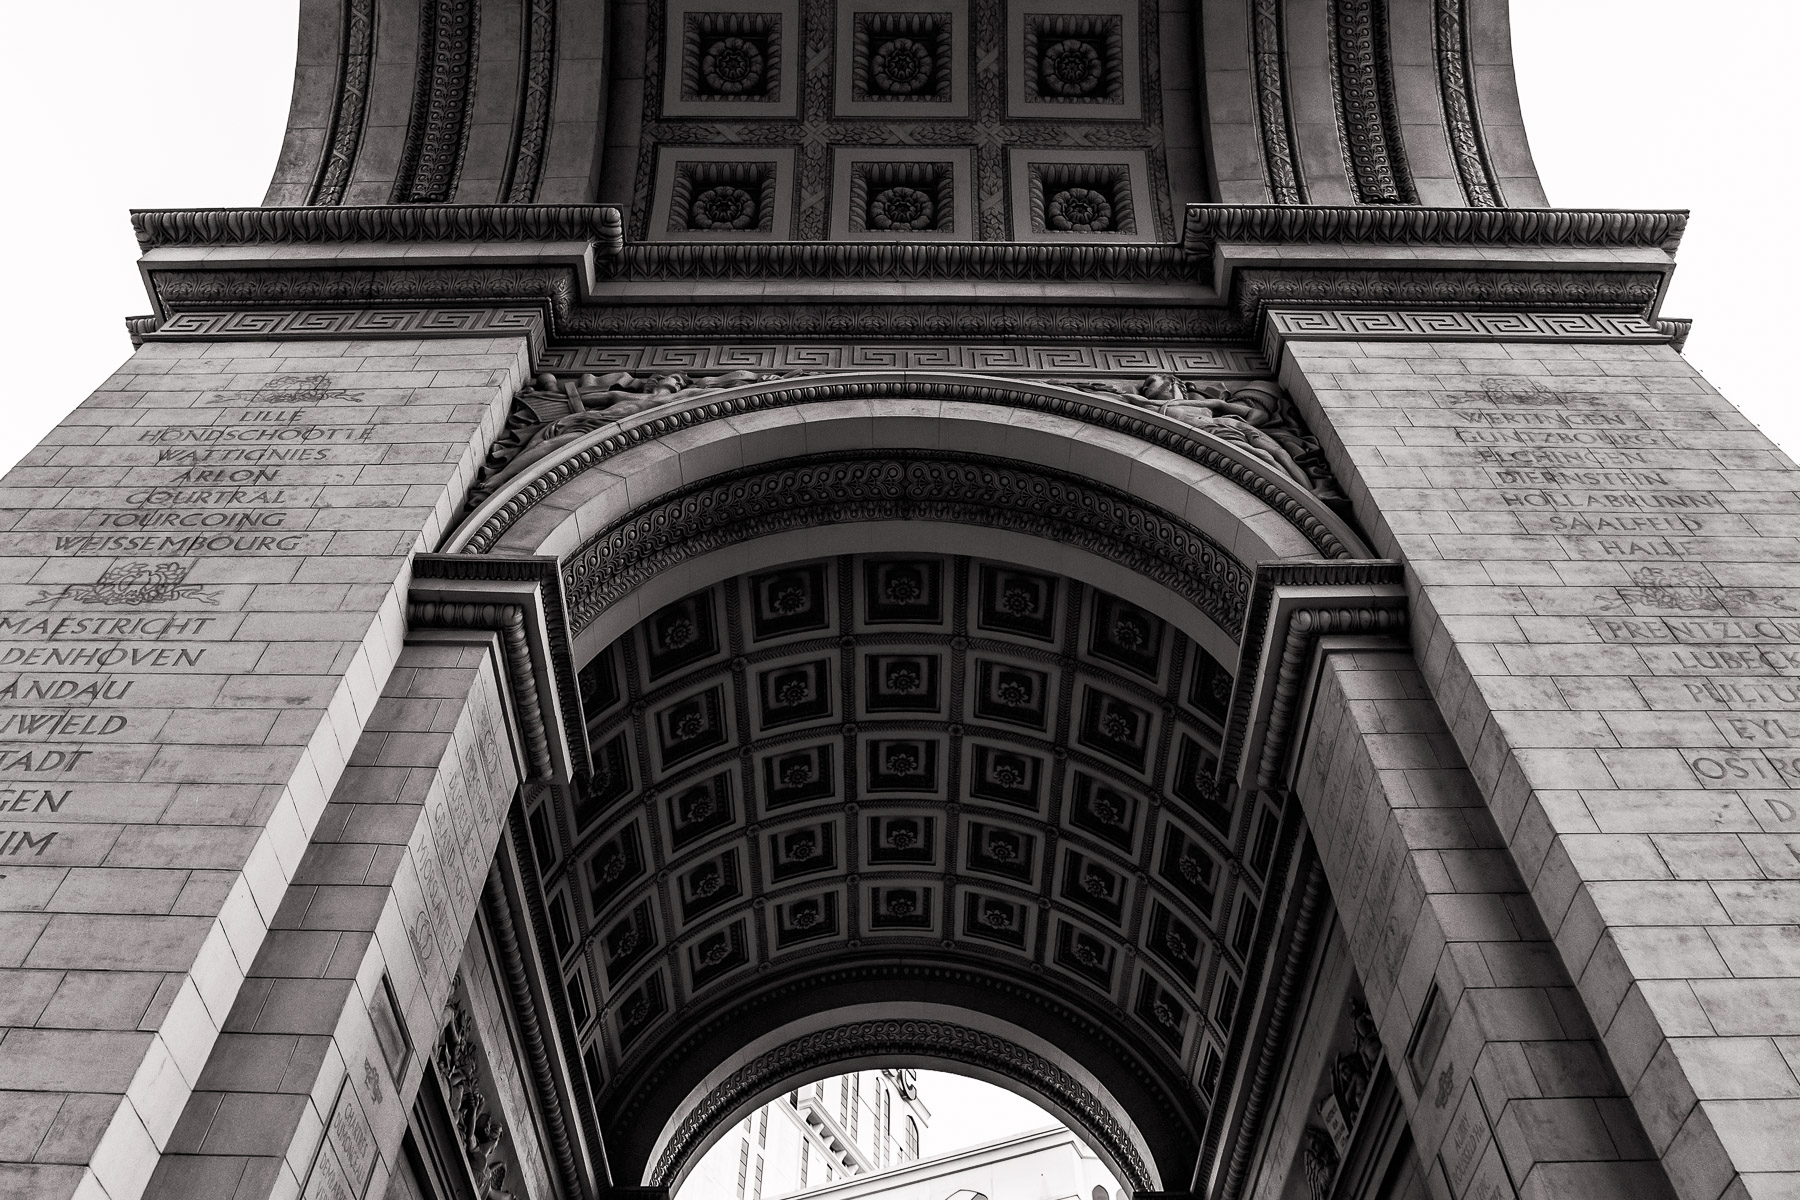 Big Arch Architectural detail r - mattgharvey | ello